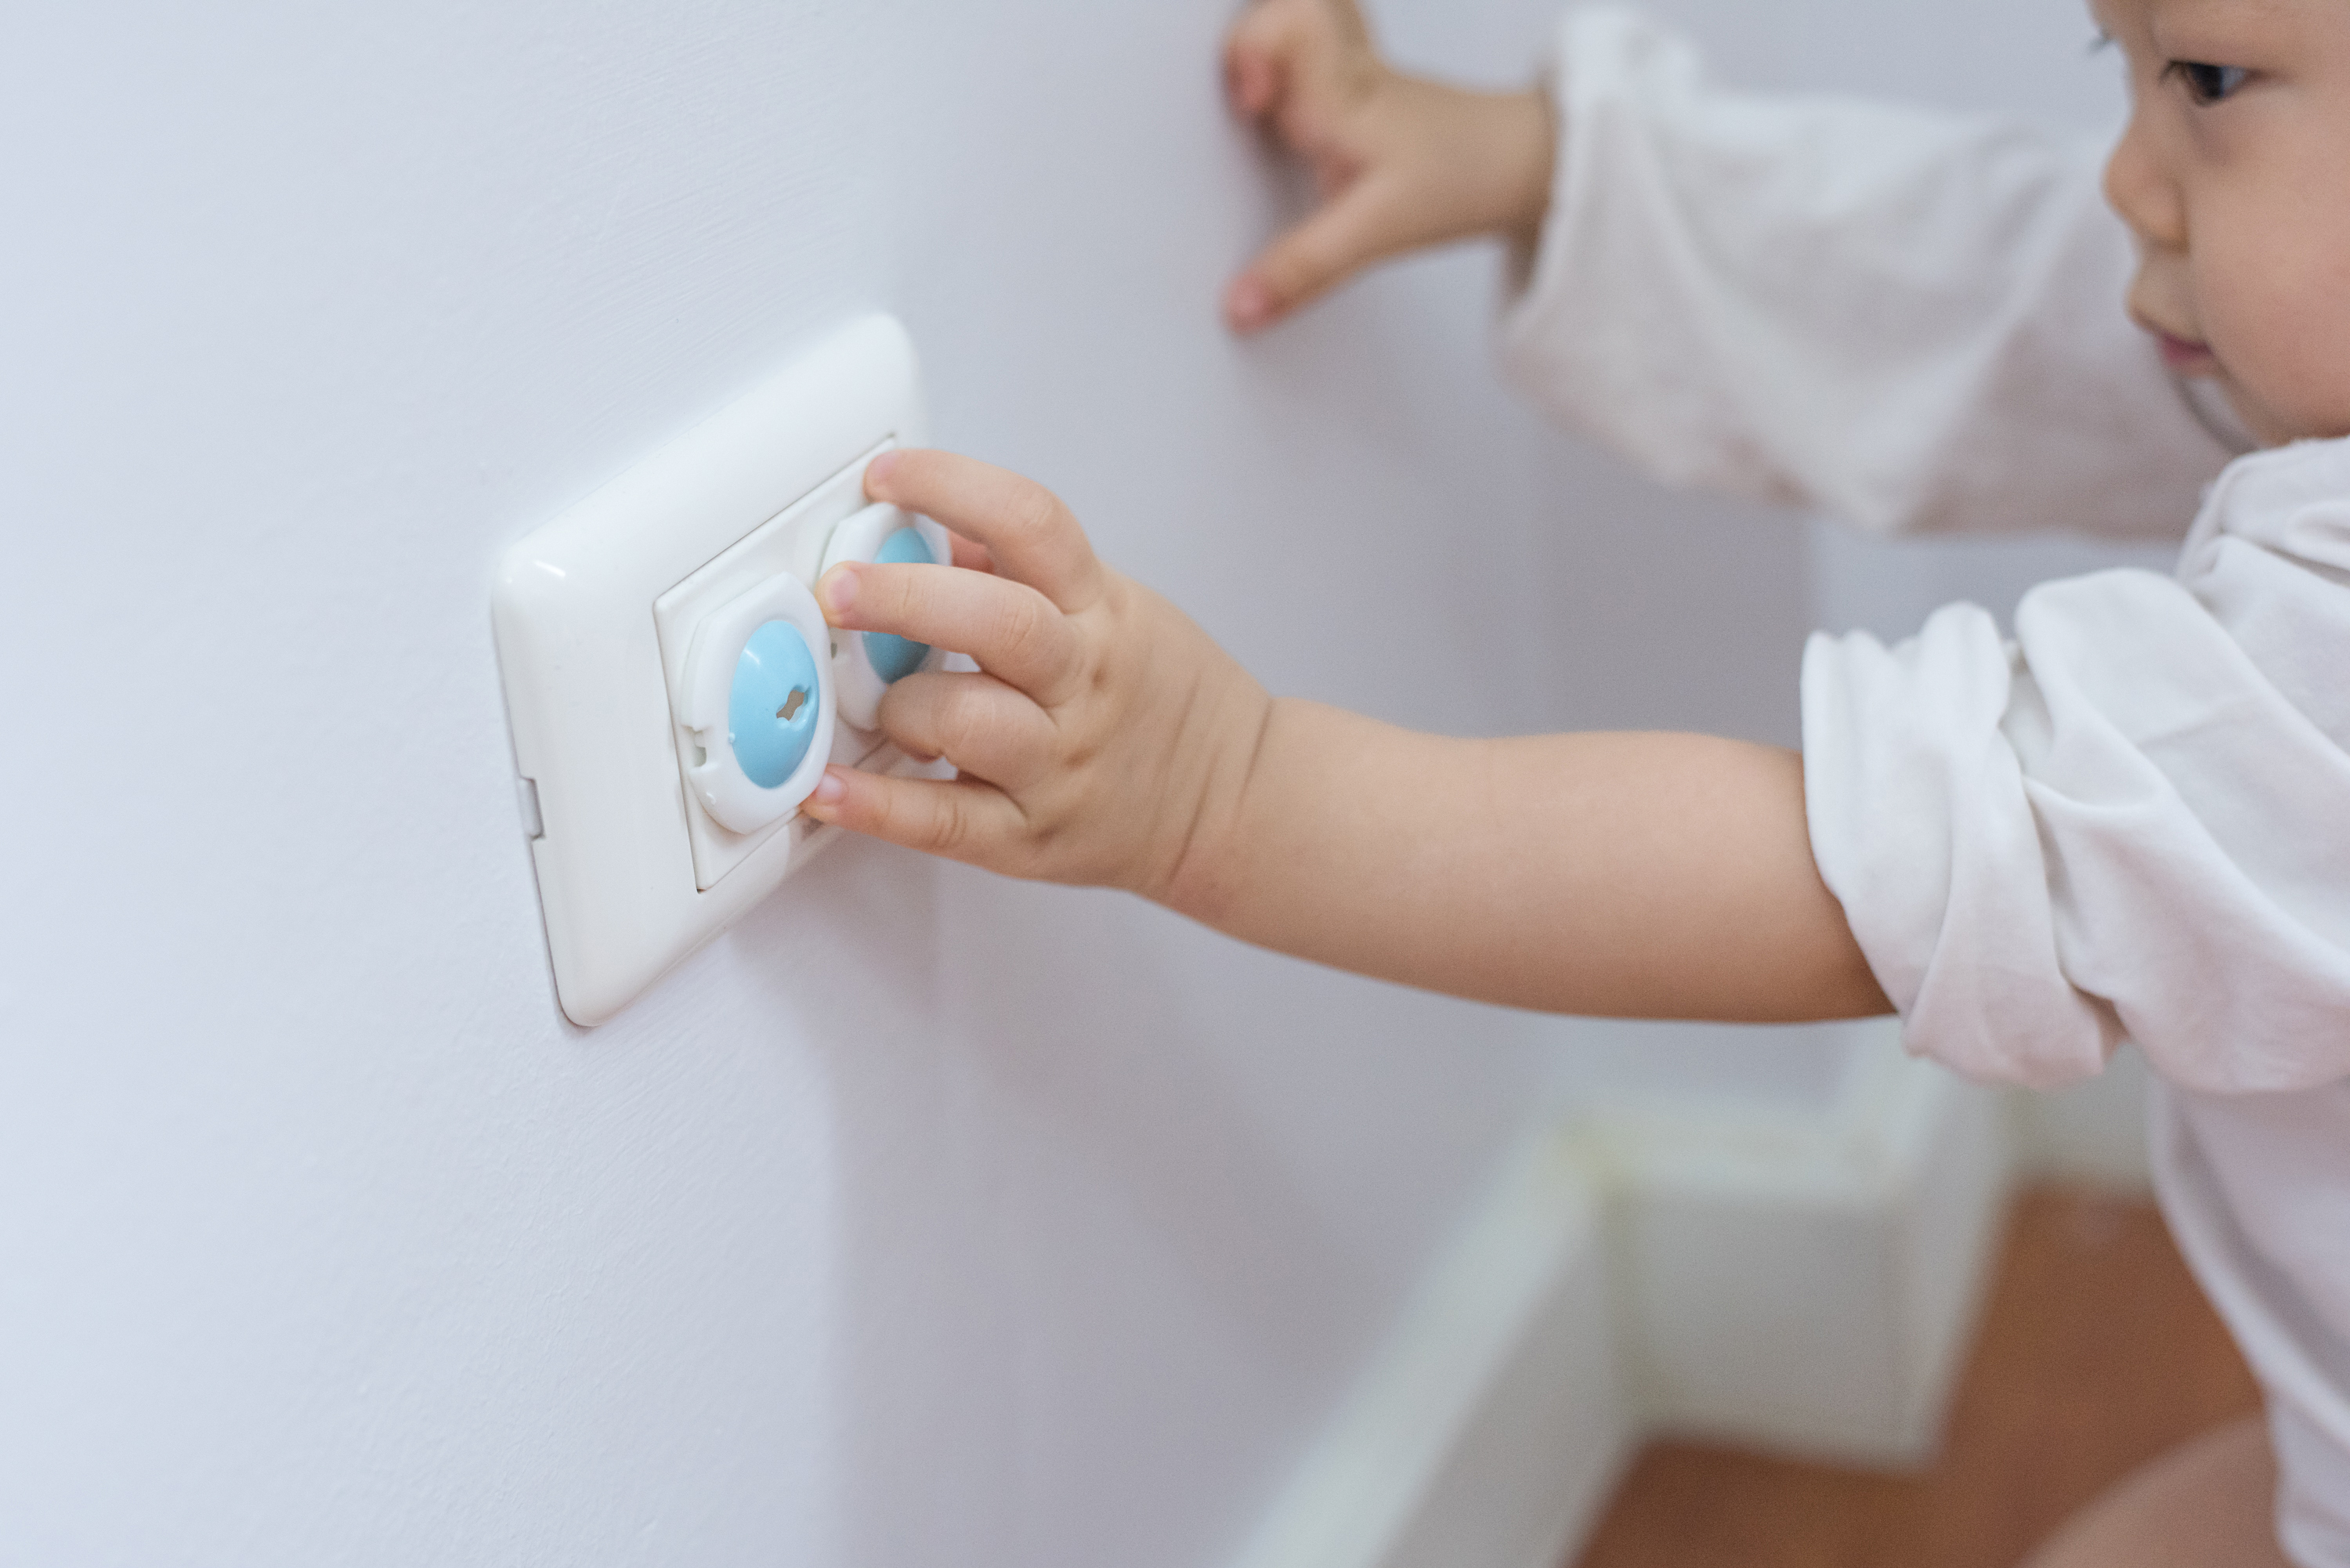 Child-proofing outlets with plastic covers and safety shutters is crucial since nearly seven children a day are injured tampering with outlets.